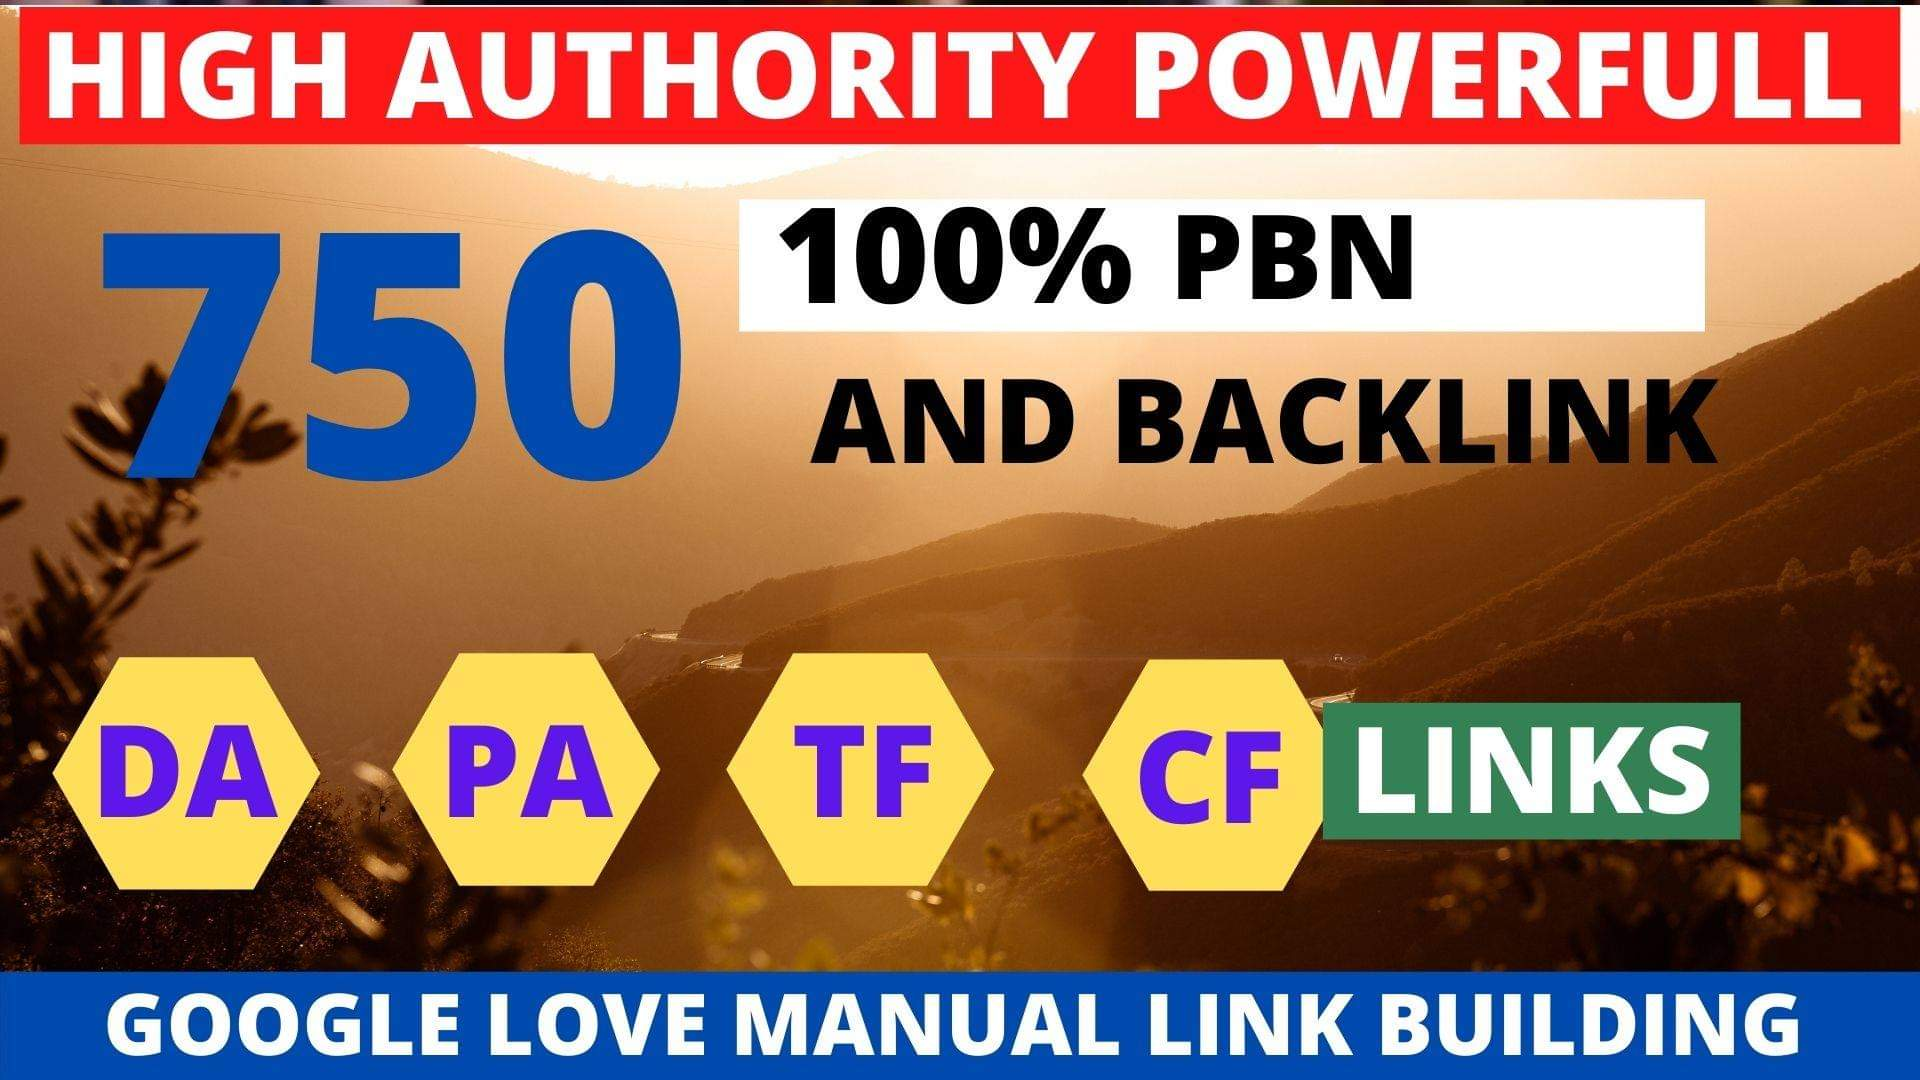 Get powerfull 750+ pbn backlink with high DA/PA/TF/CF on your homepage with unique website